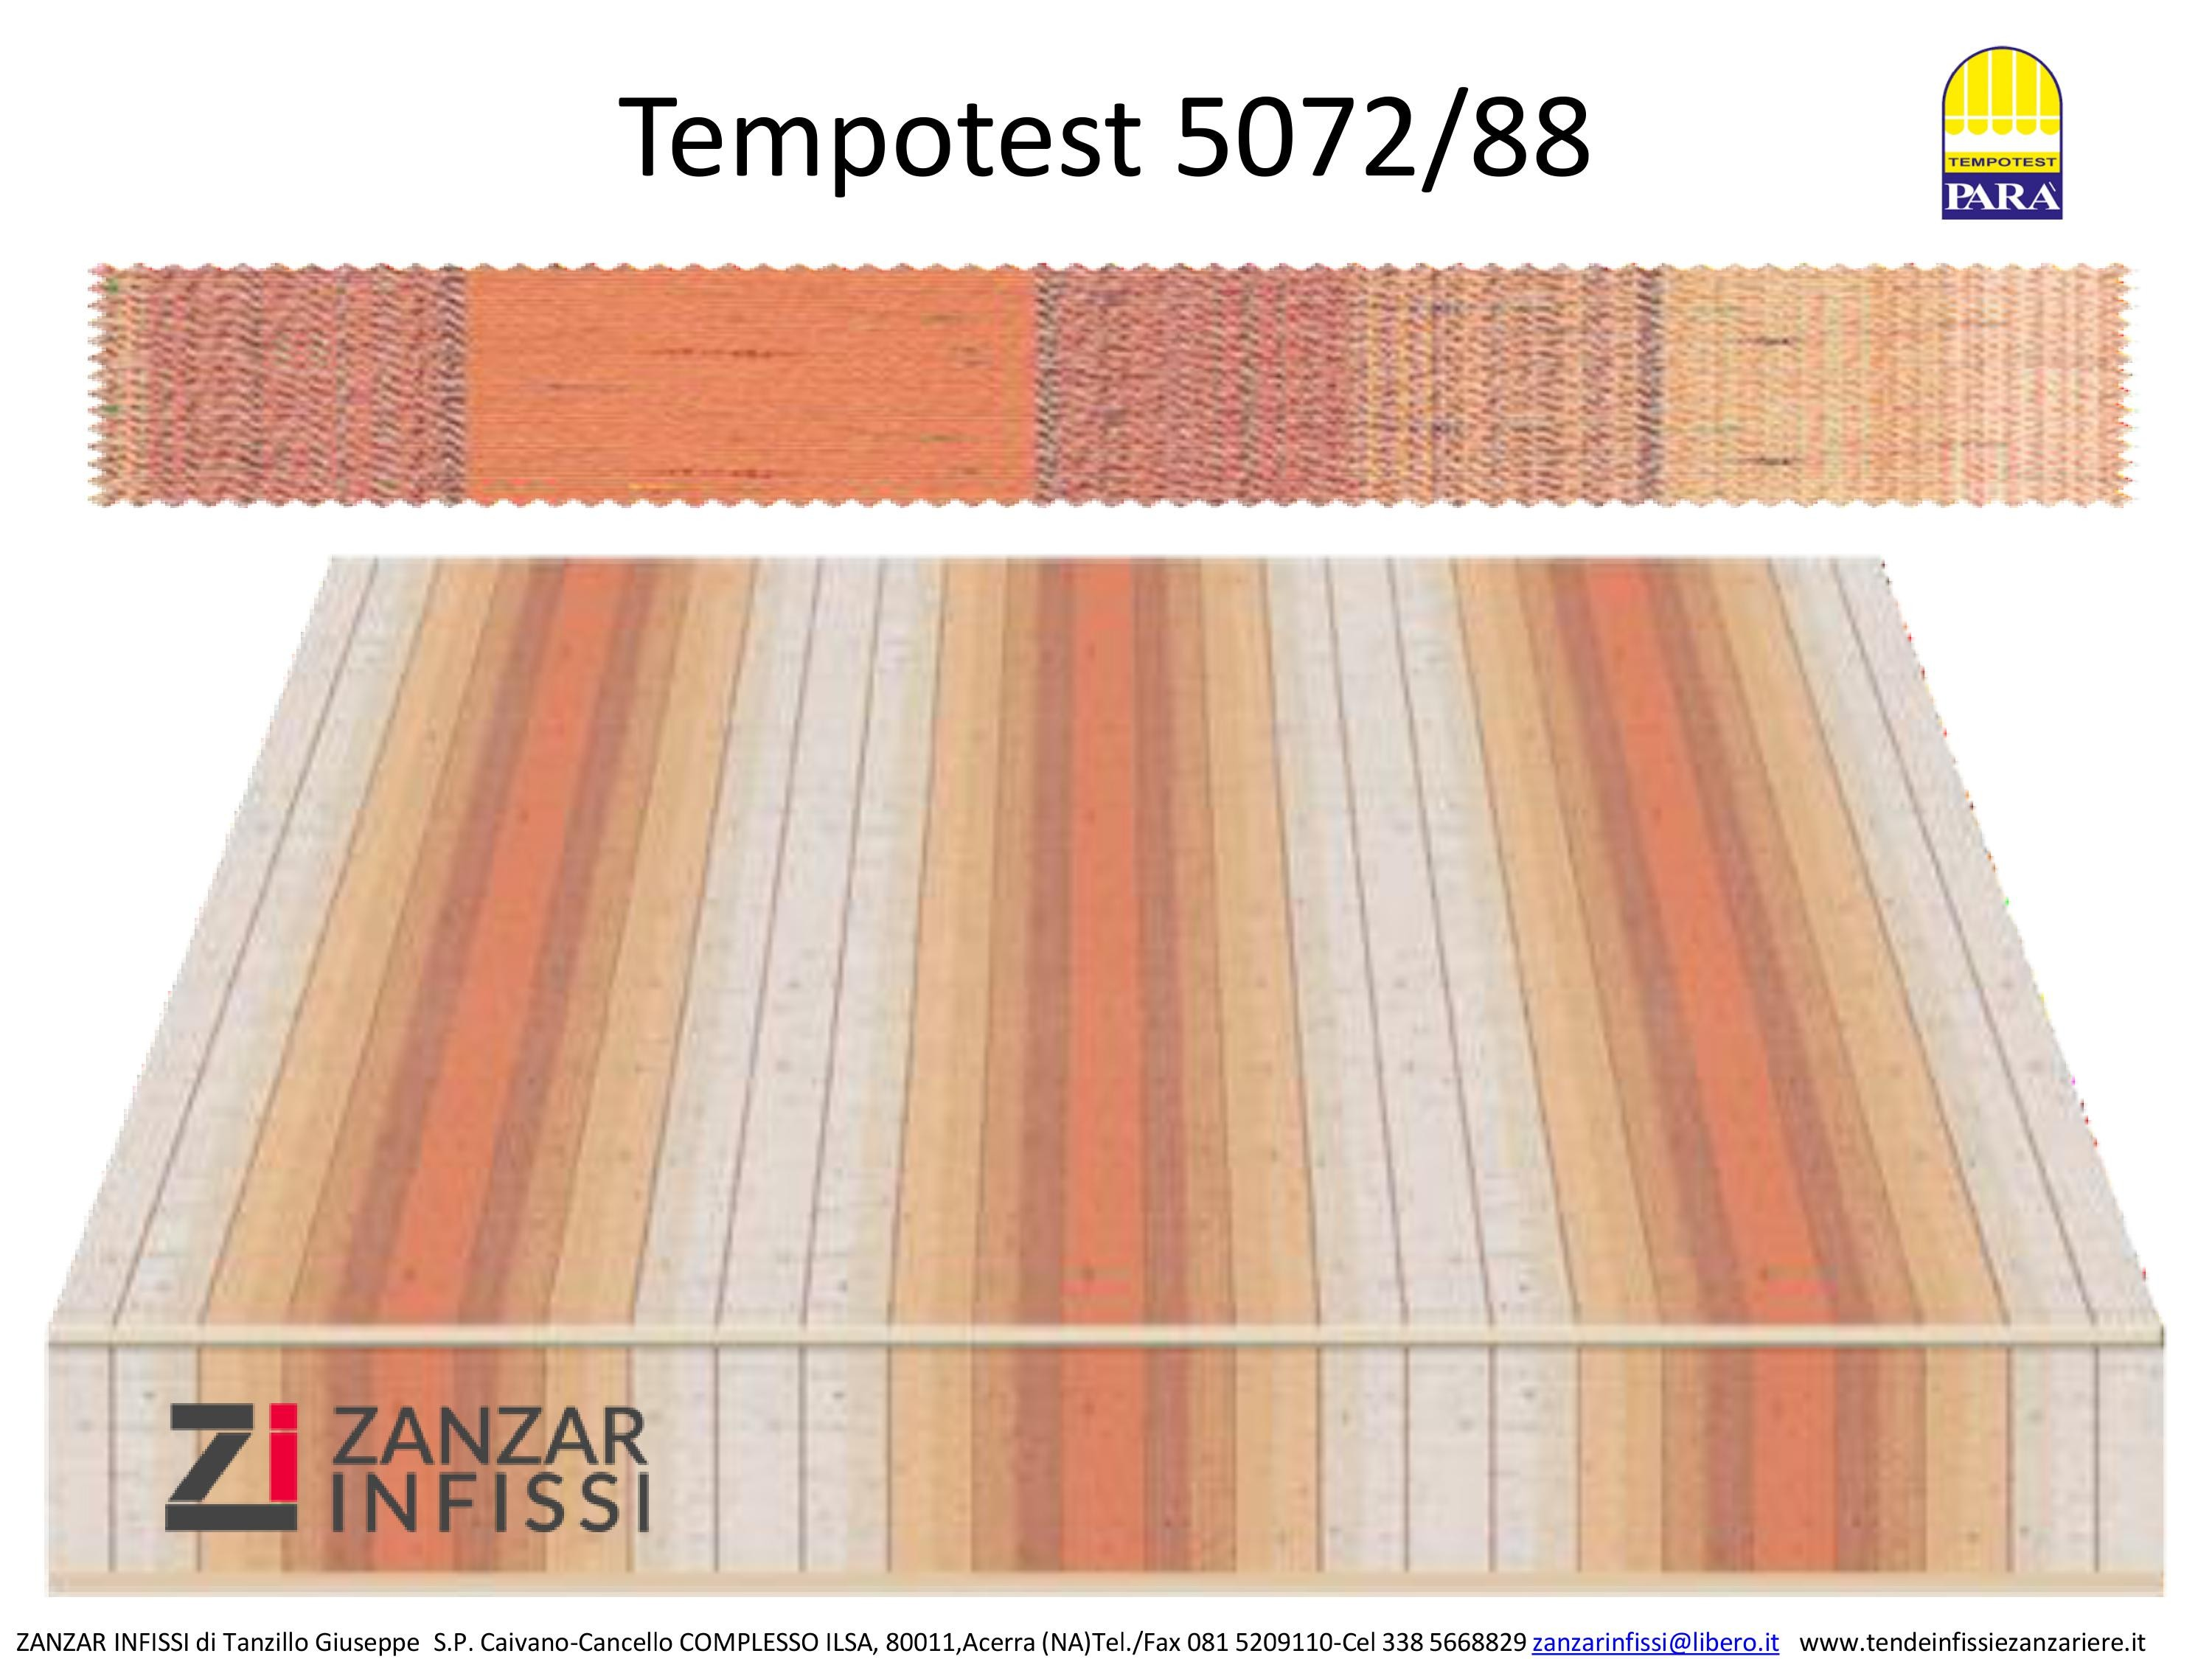 Tempotest 5072/88